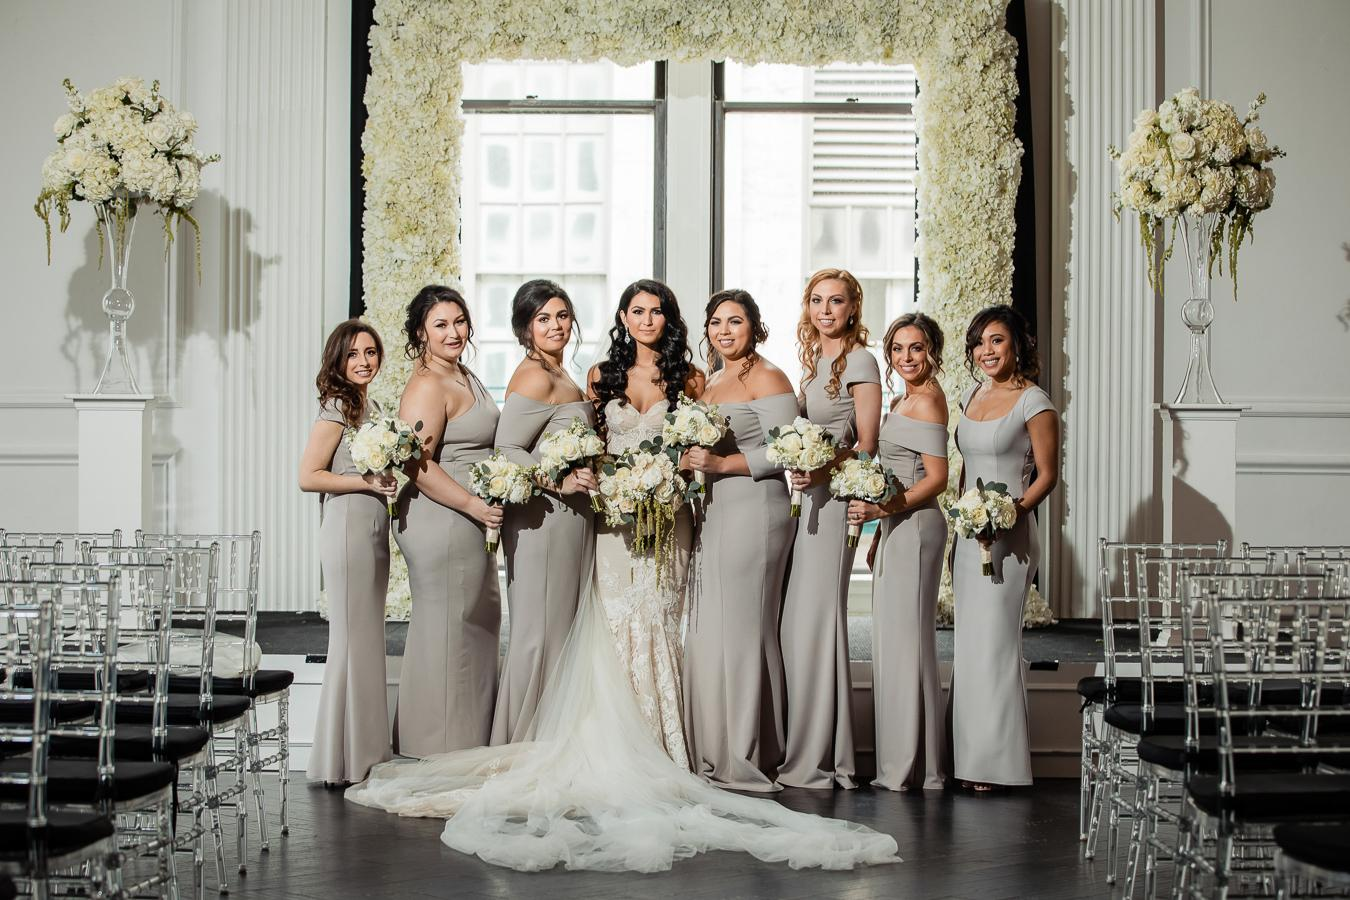 Modern Philadelphia Wedding At The Downtown Club Anastasia Romanova Photography Philly In Love Philadelphia Weddings Venues Vendors